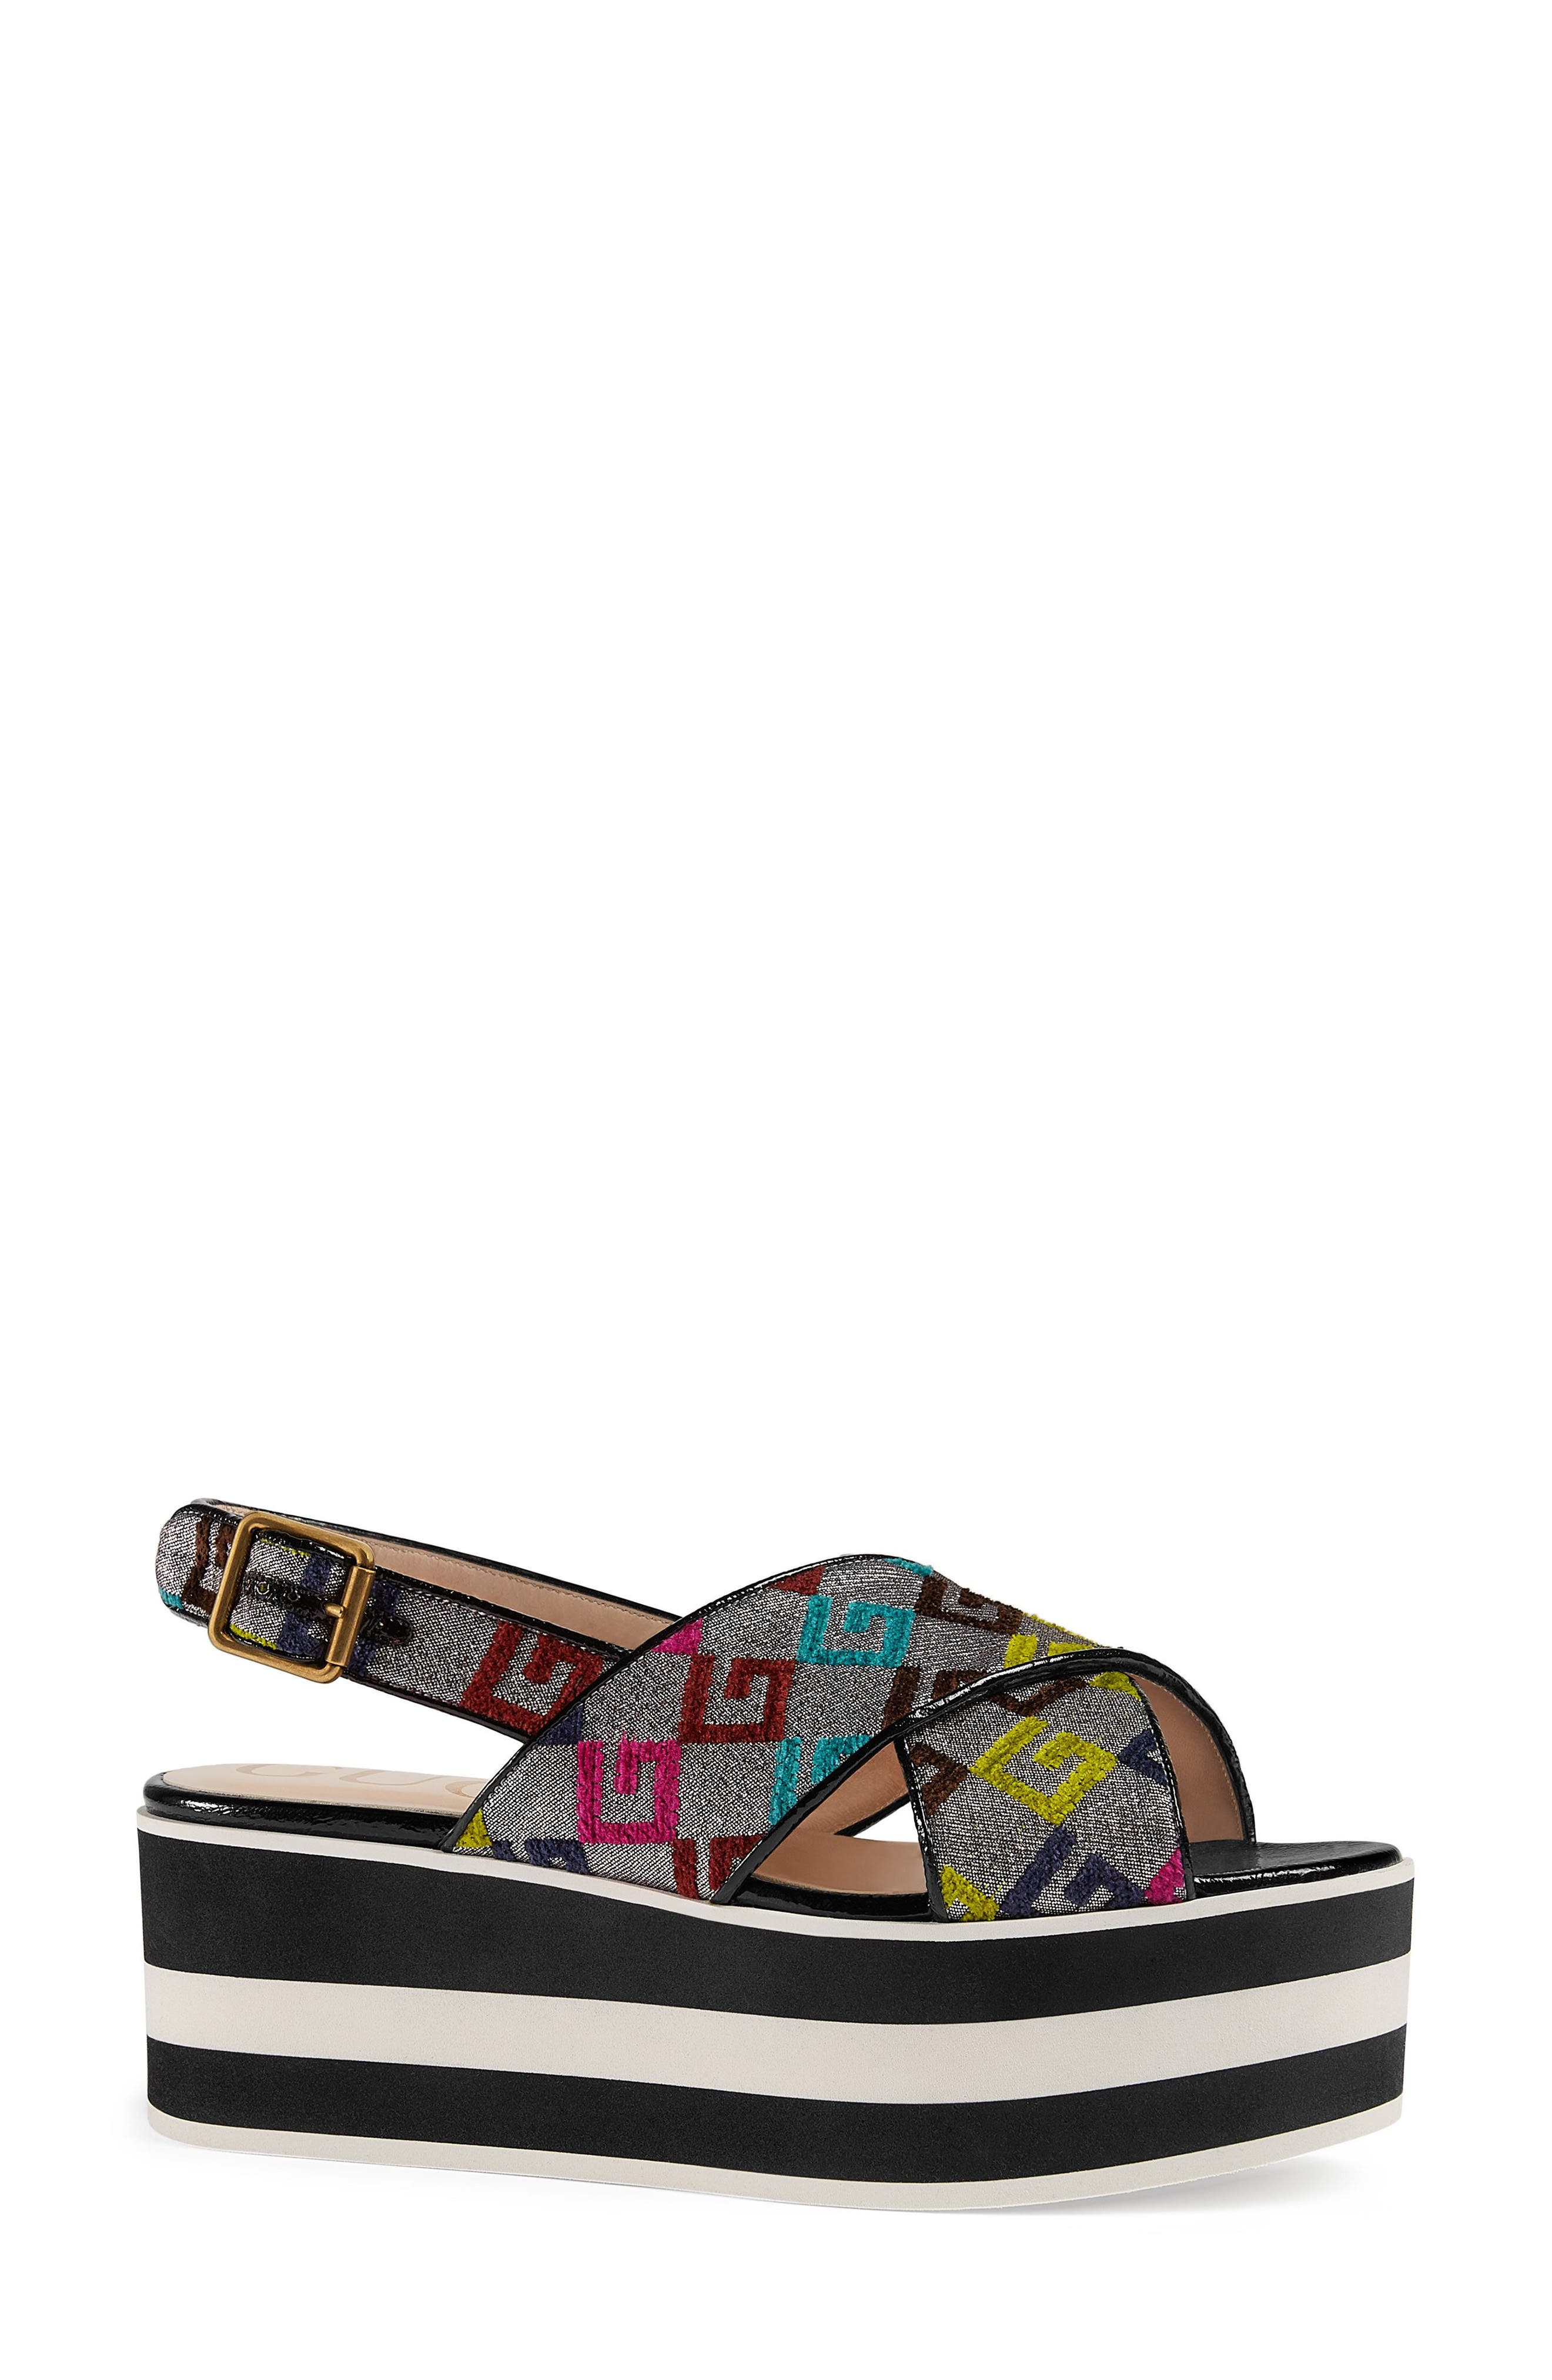 Peggy Flatform Sandal,                             Main thumbnail 1, color,                             Argento